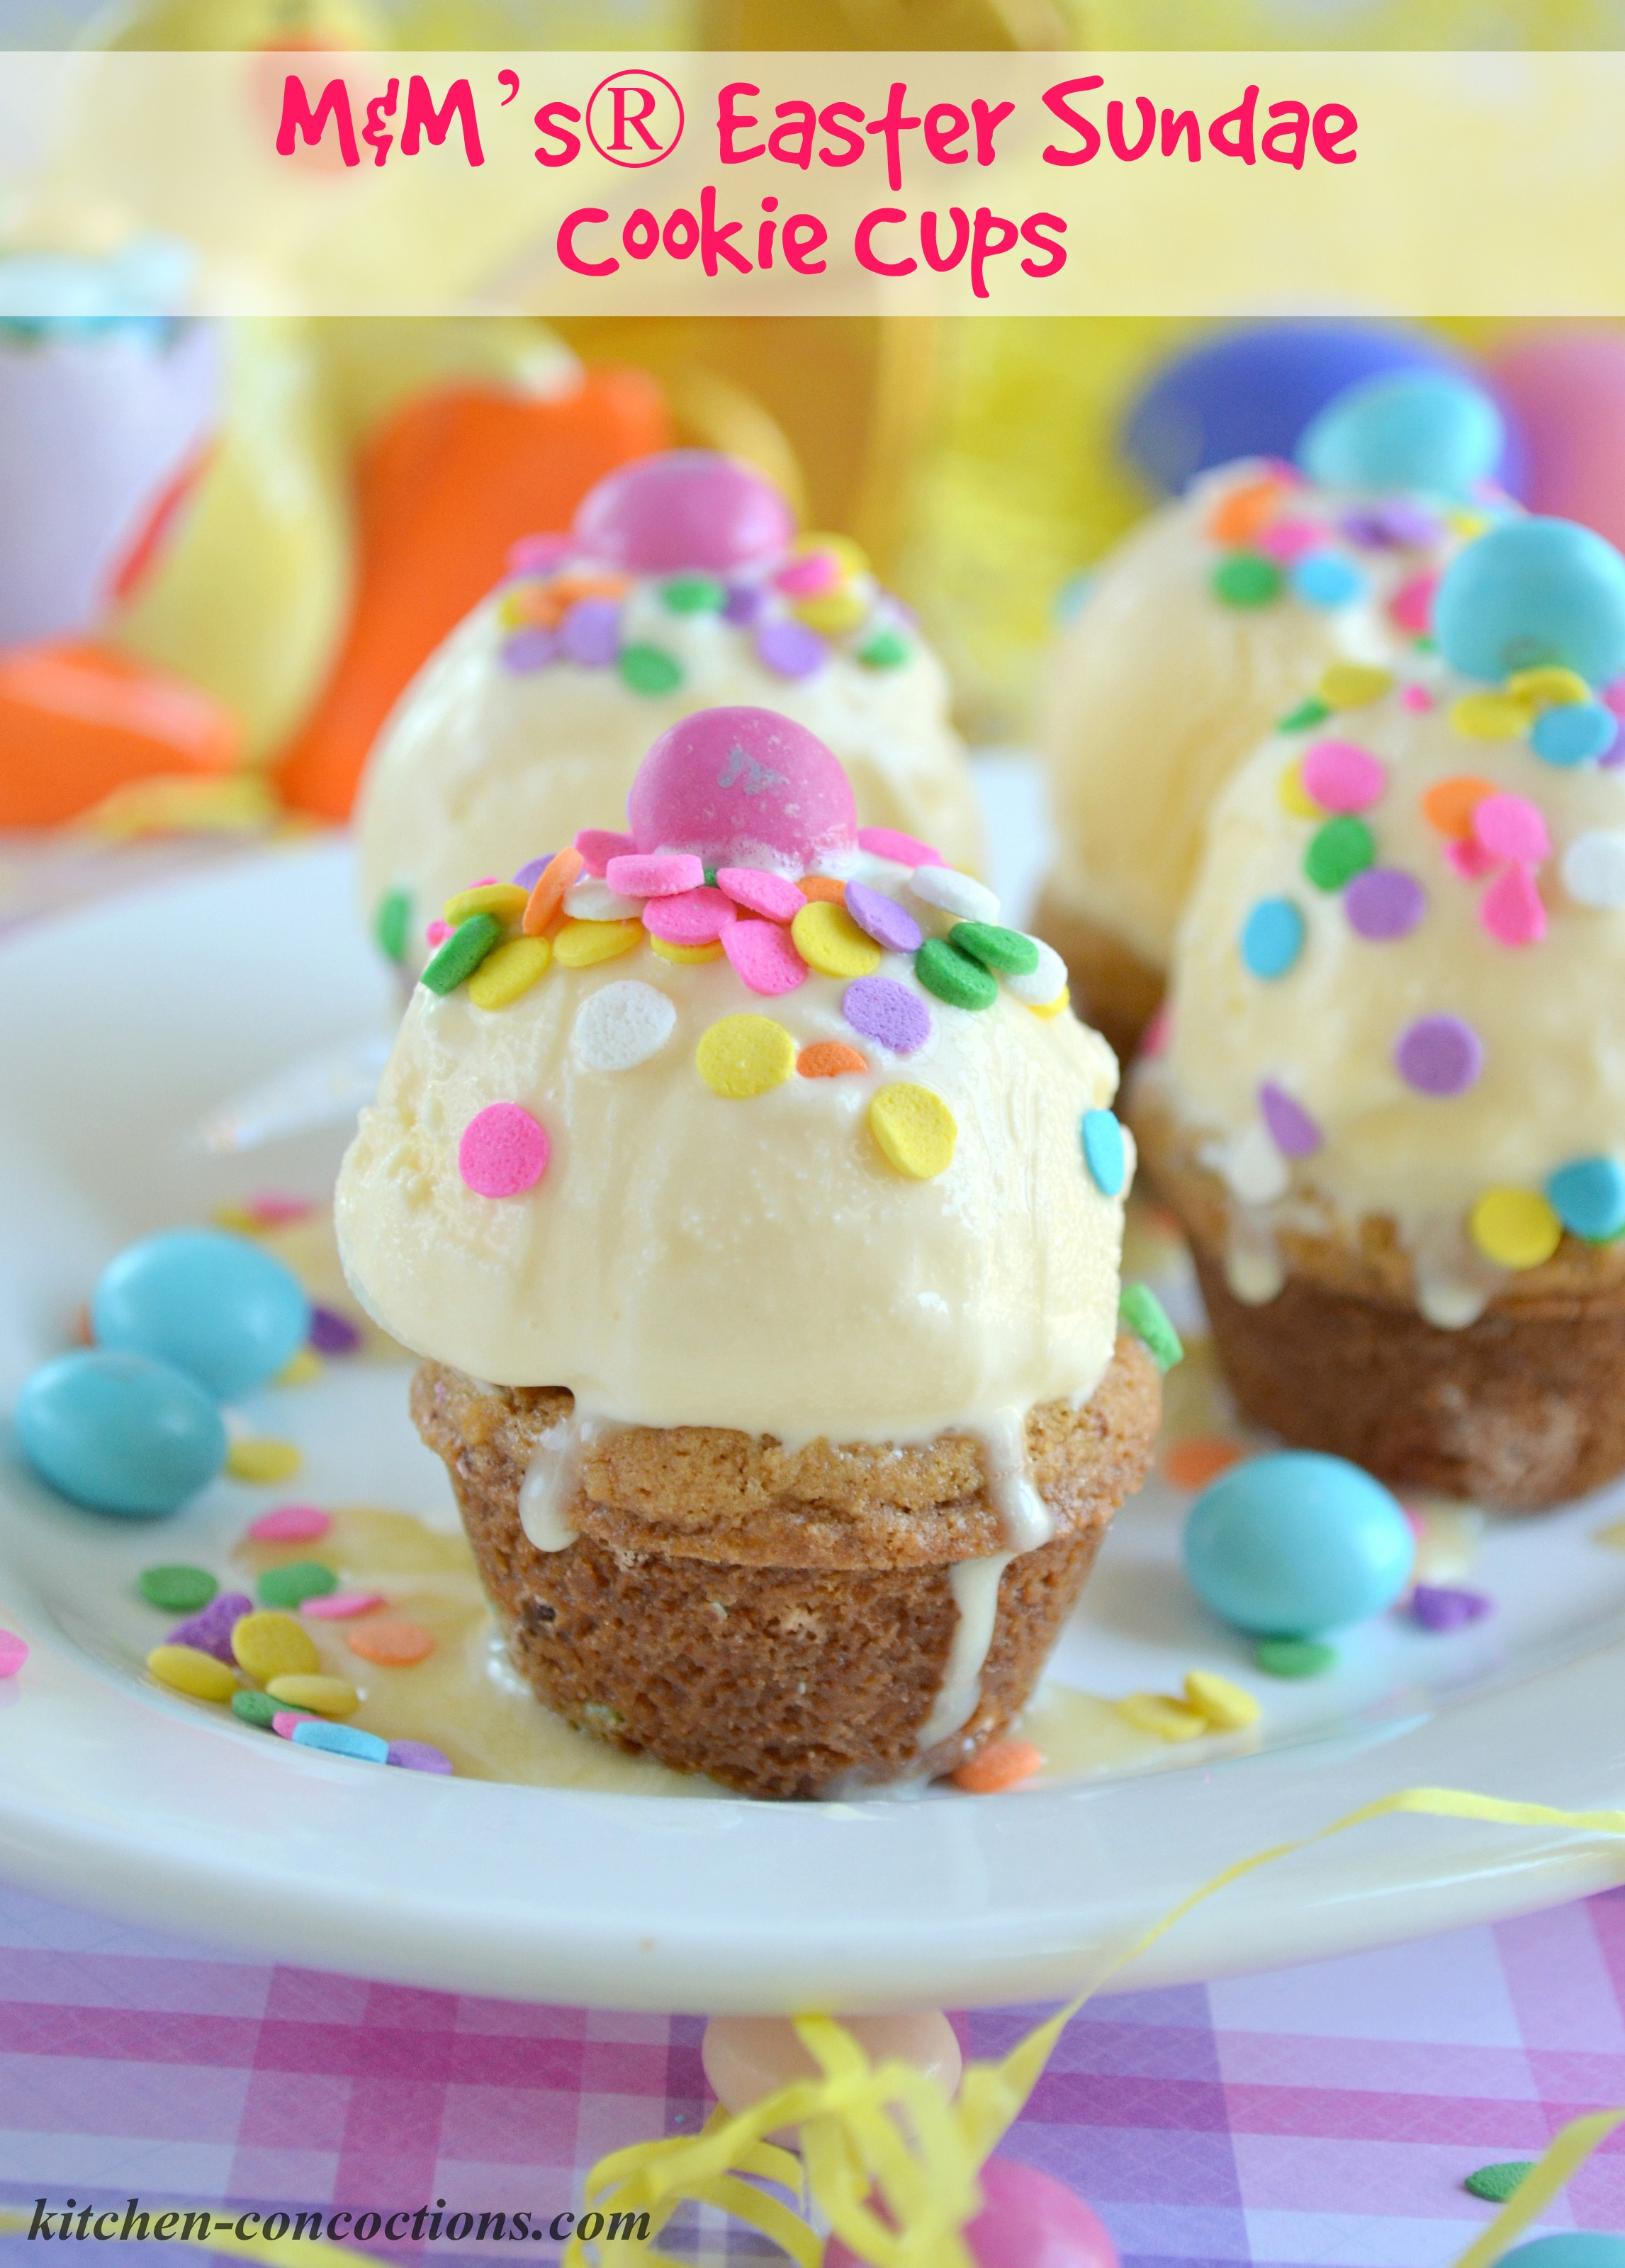 MampMs Easter Sundae Cookie Cups Kitchen Concoctions